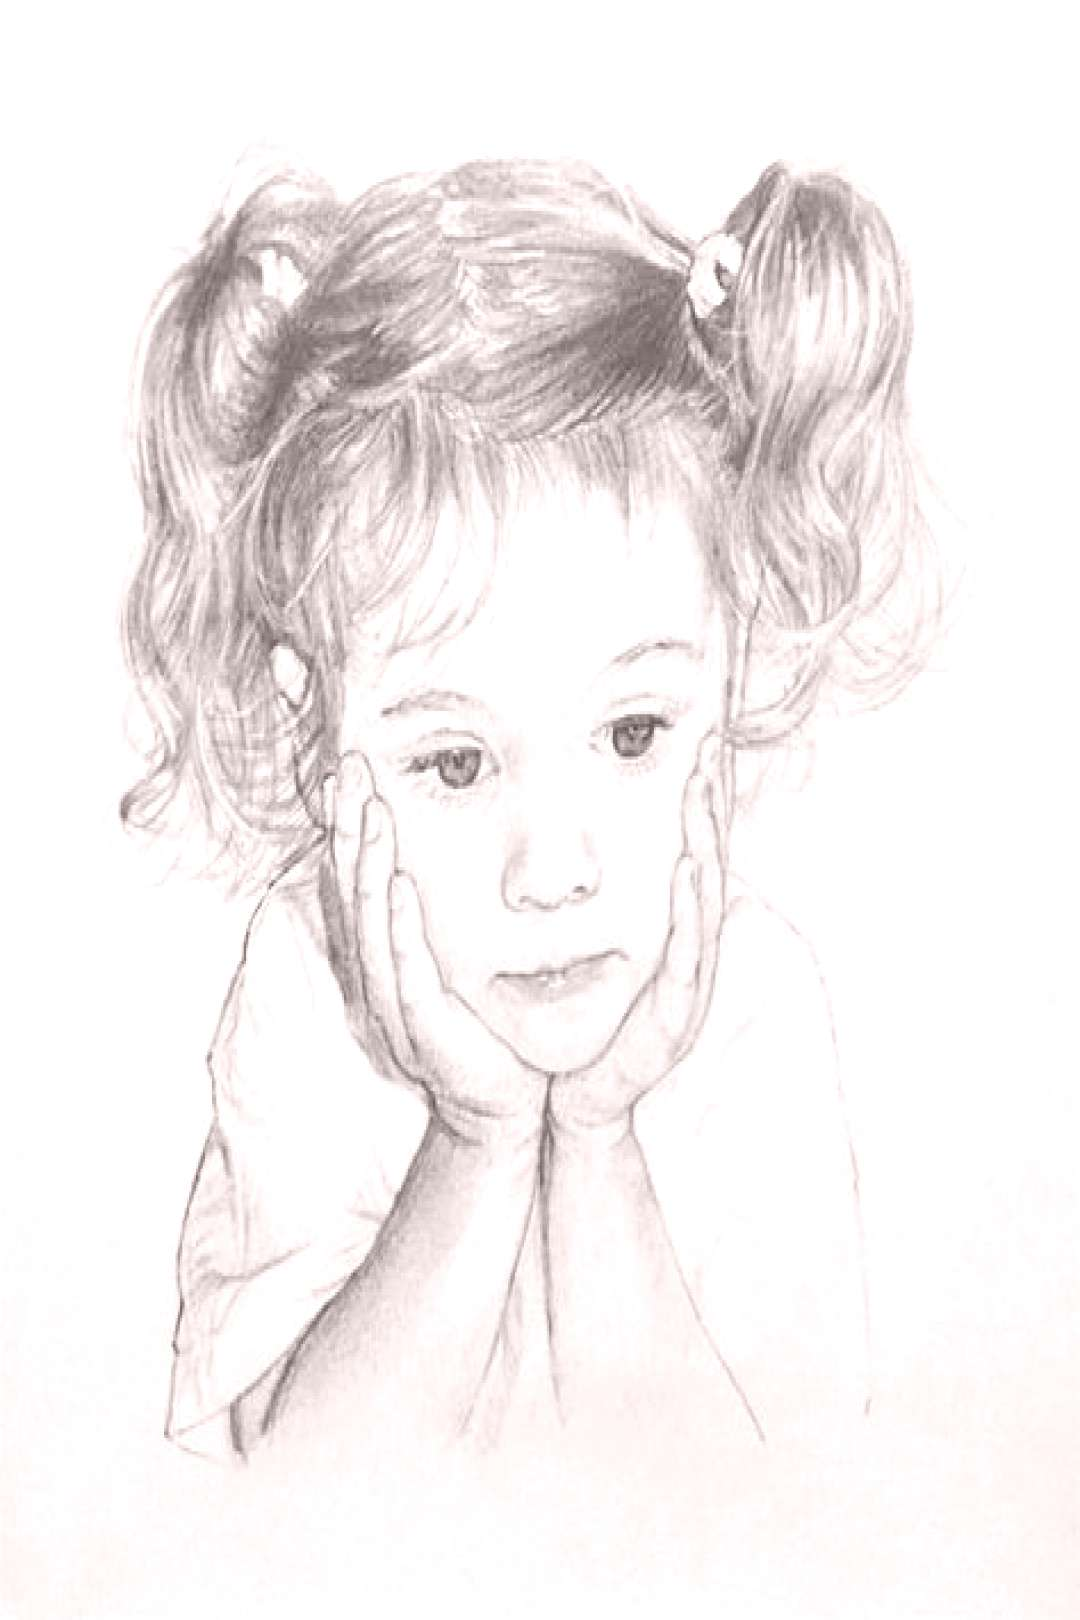 Child portrait in graphite pencil on paper. Click the picture or the read it button above to see